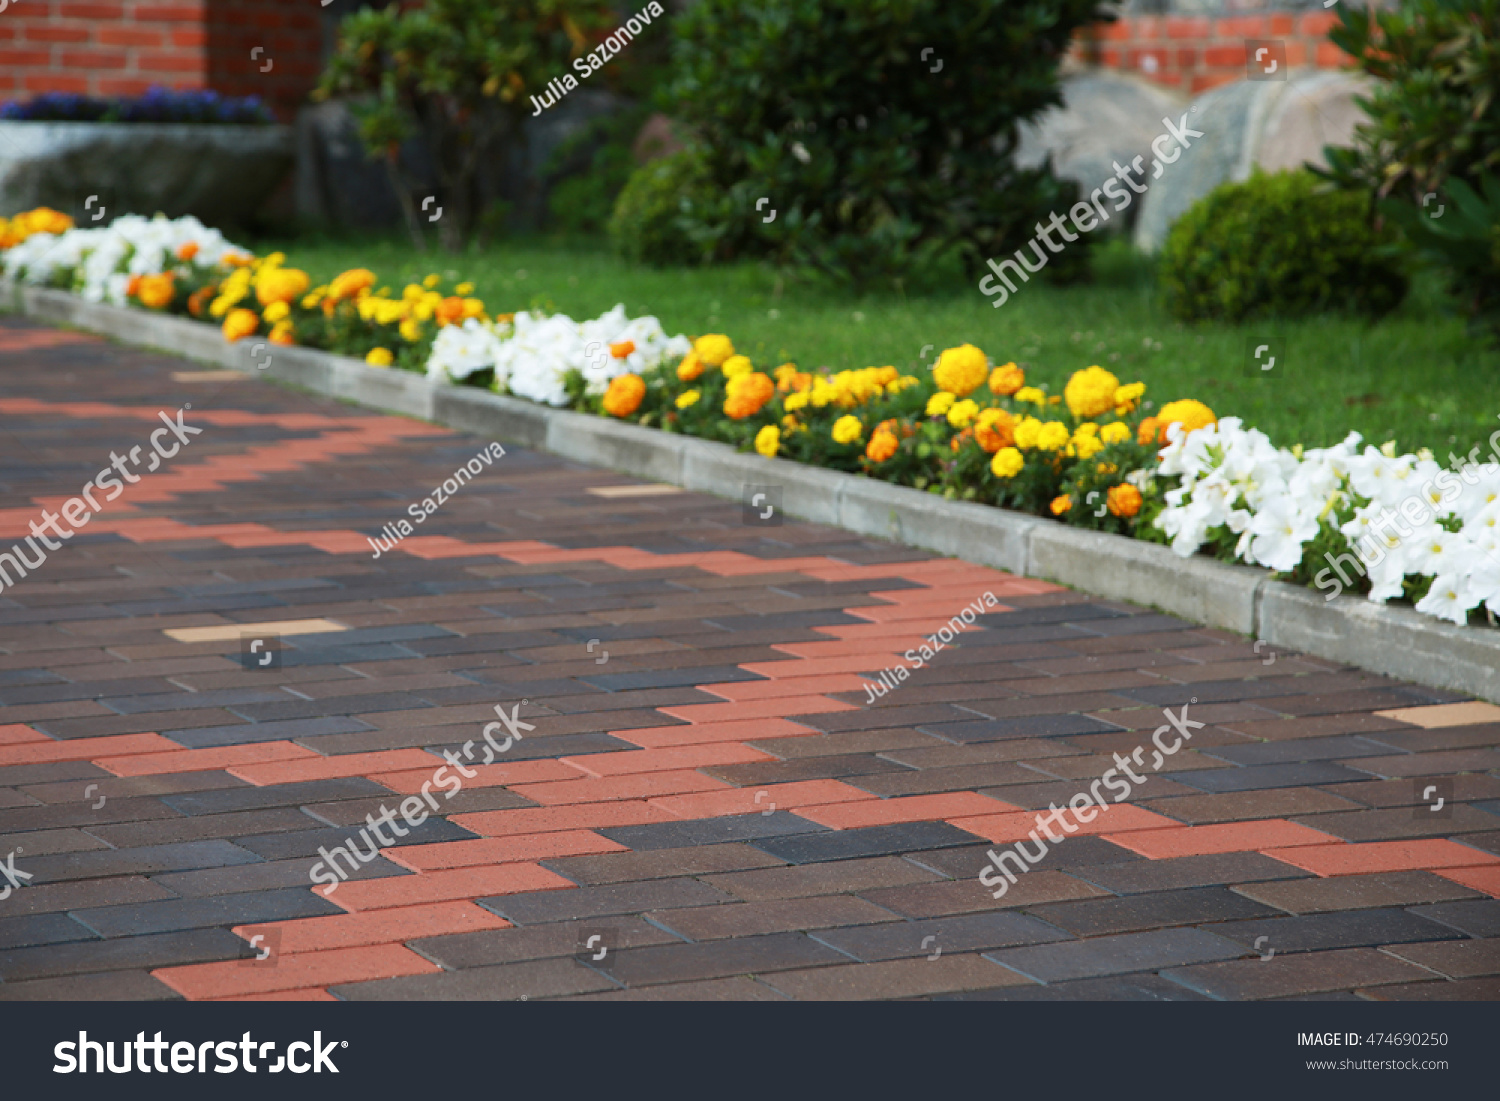 Traditional paving clinker pattern in front of the house  Beautiful garden  design  Illustration for. Traditional Paving Clinker Pattern Front House Stock Photo